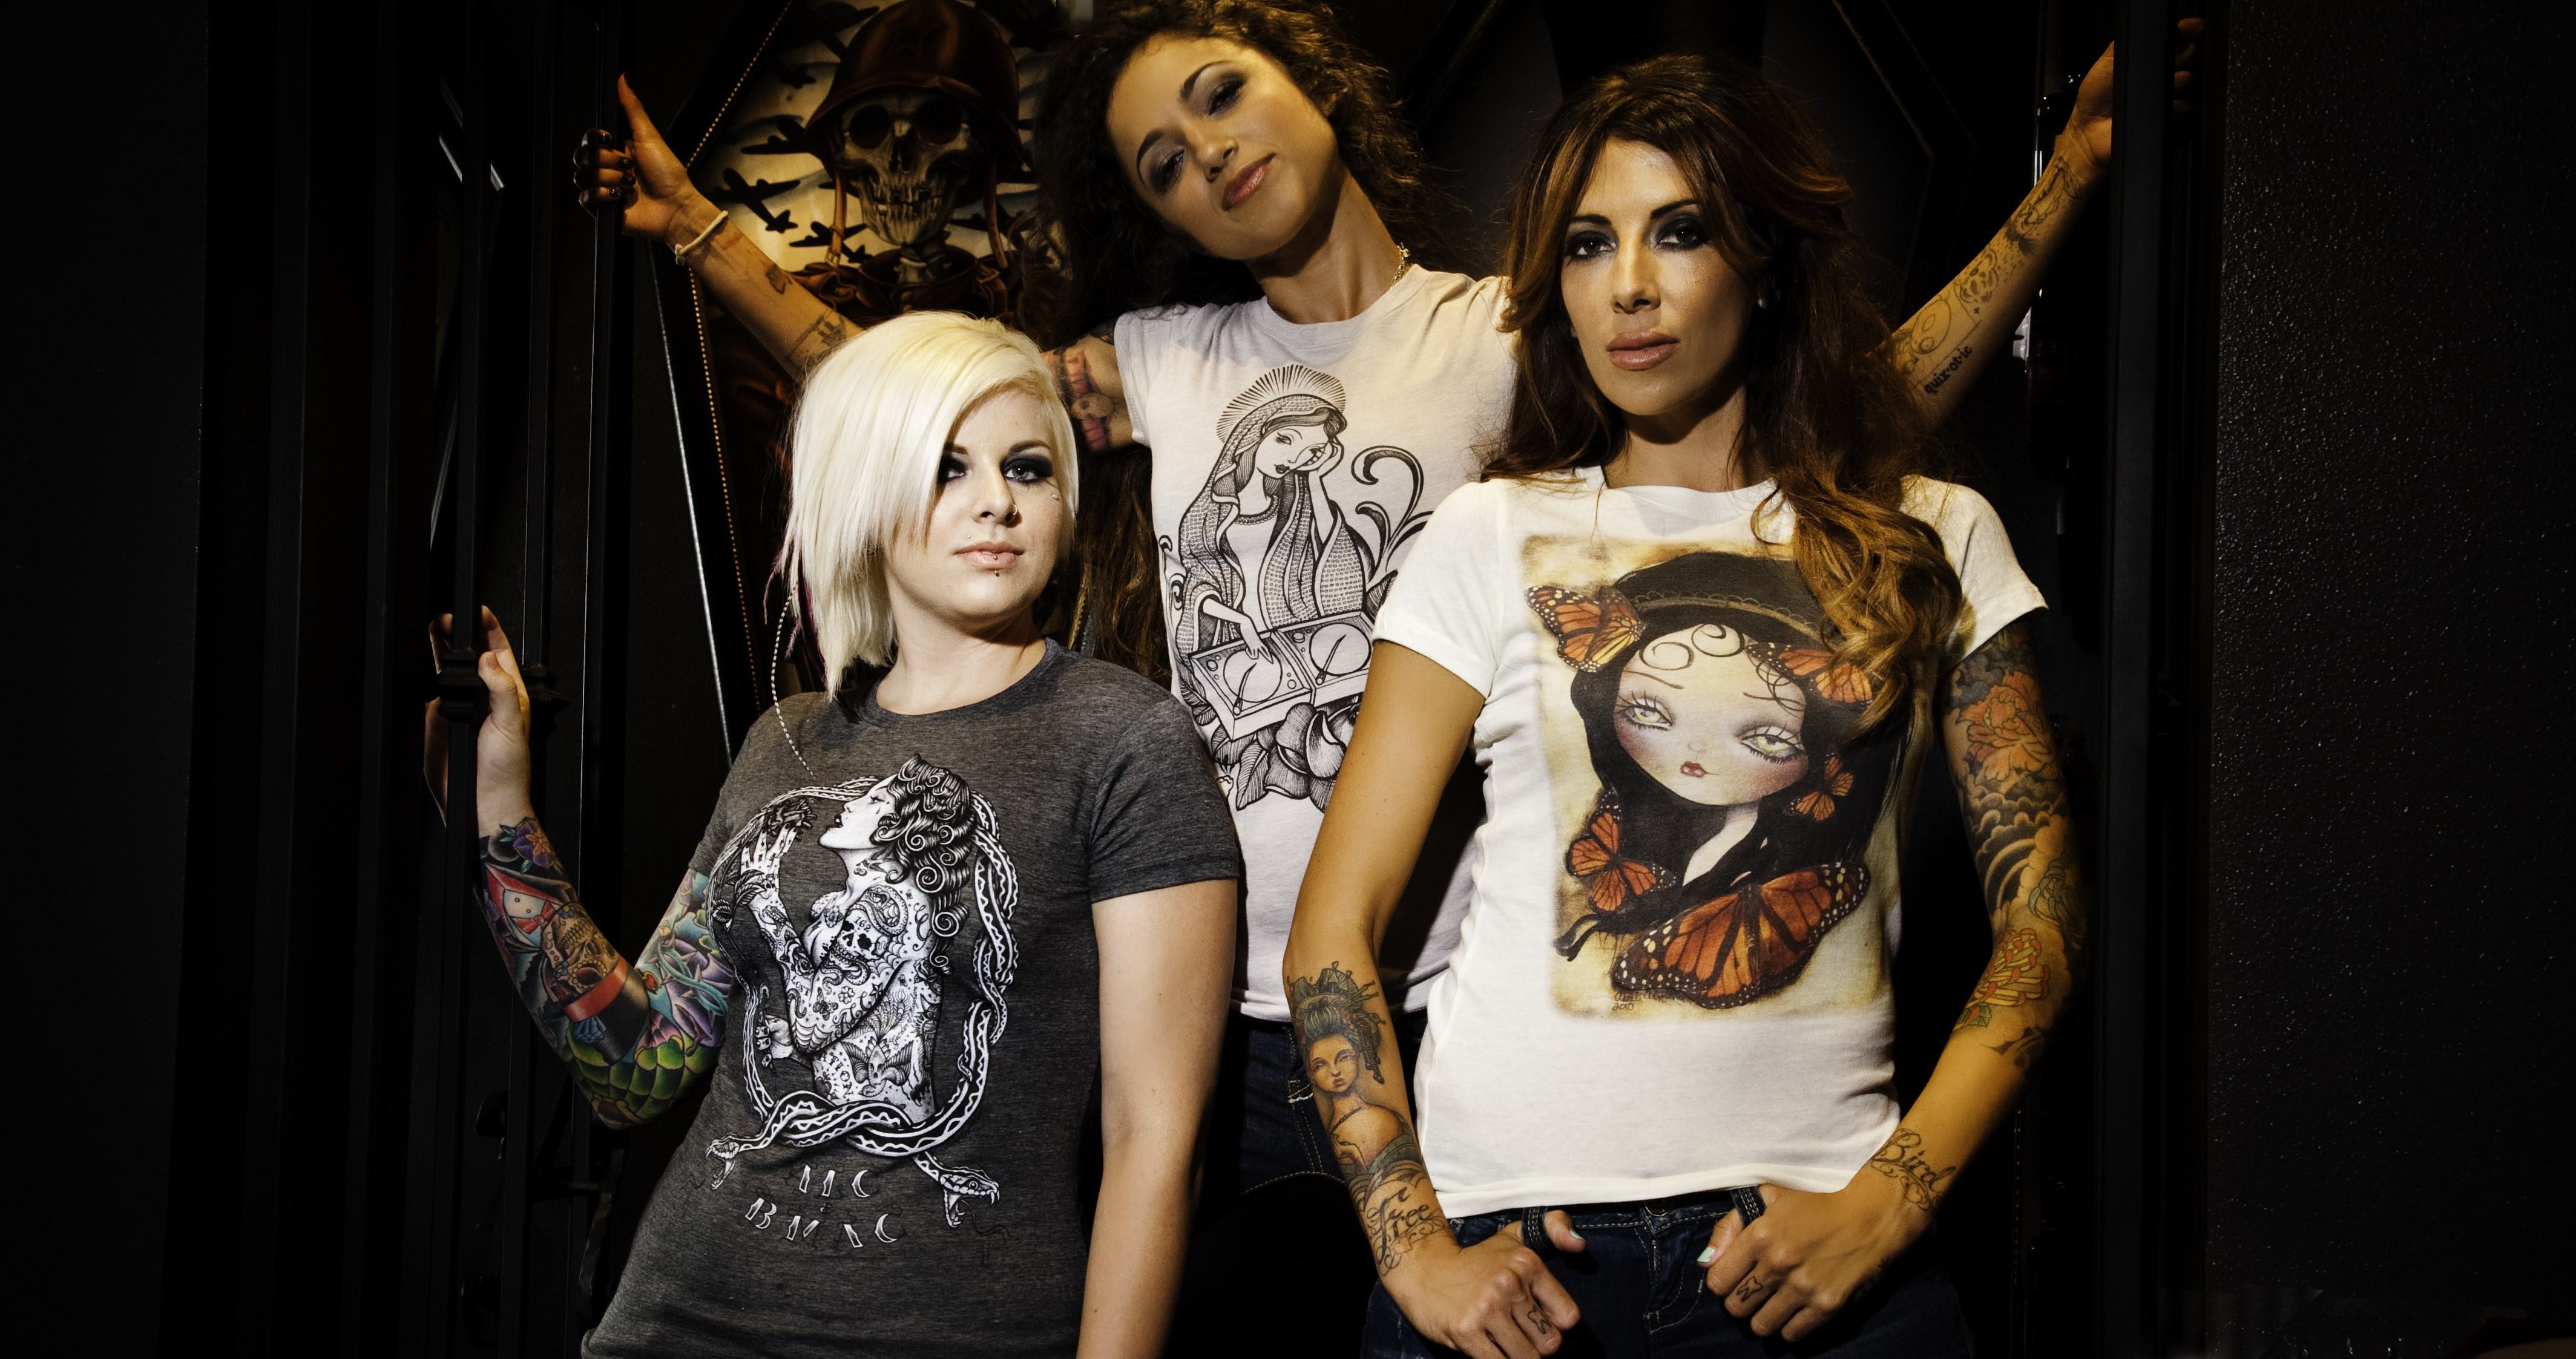 women-s-tattoo-clothing-apparel-banner.jpg